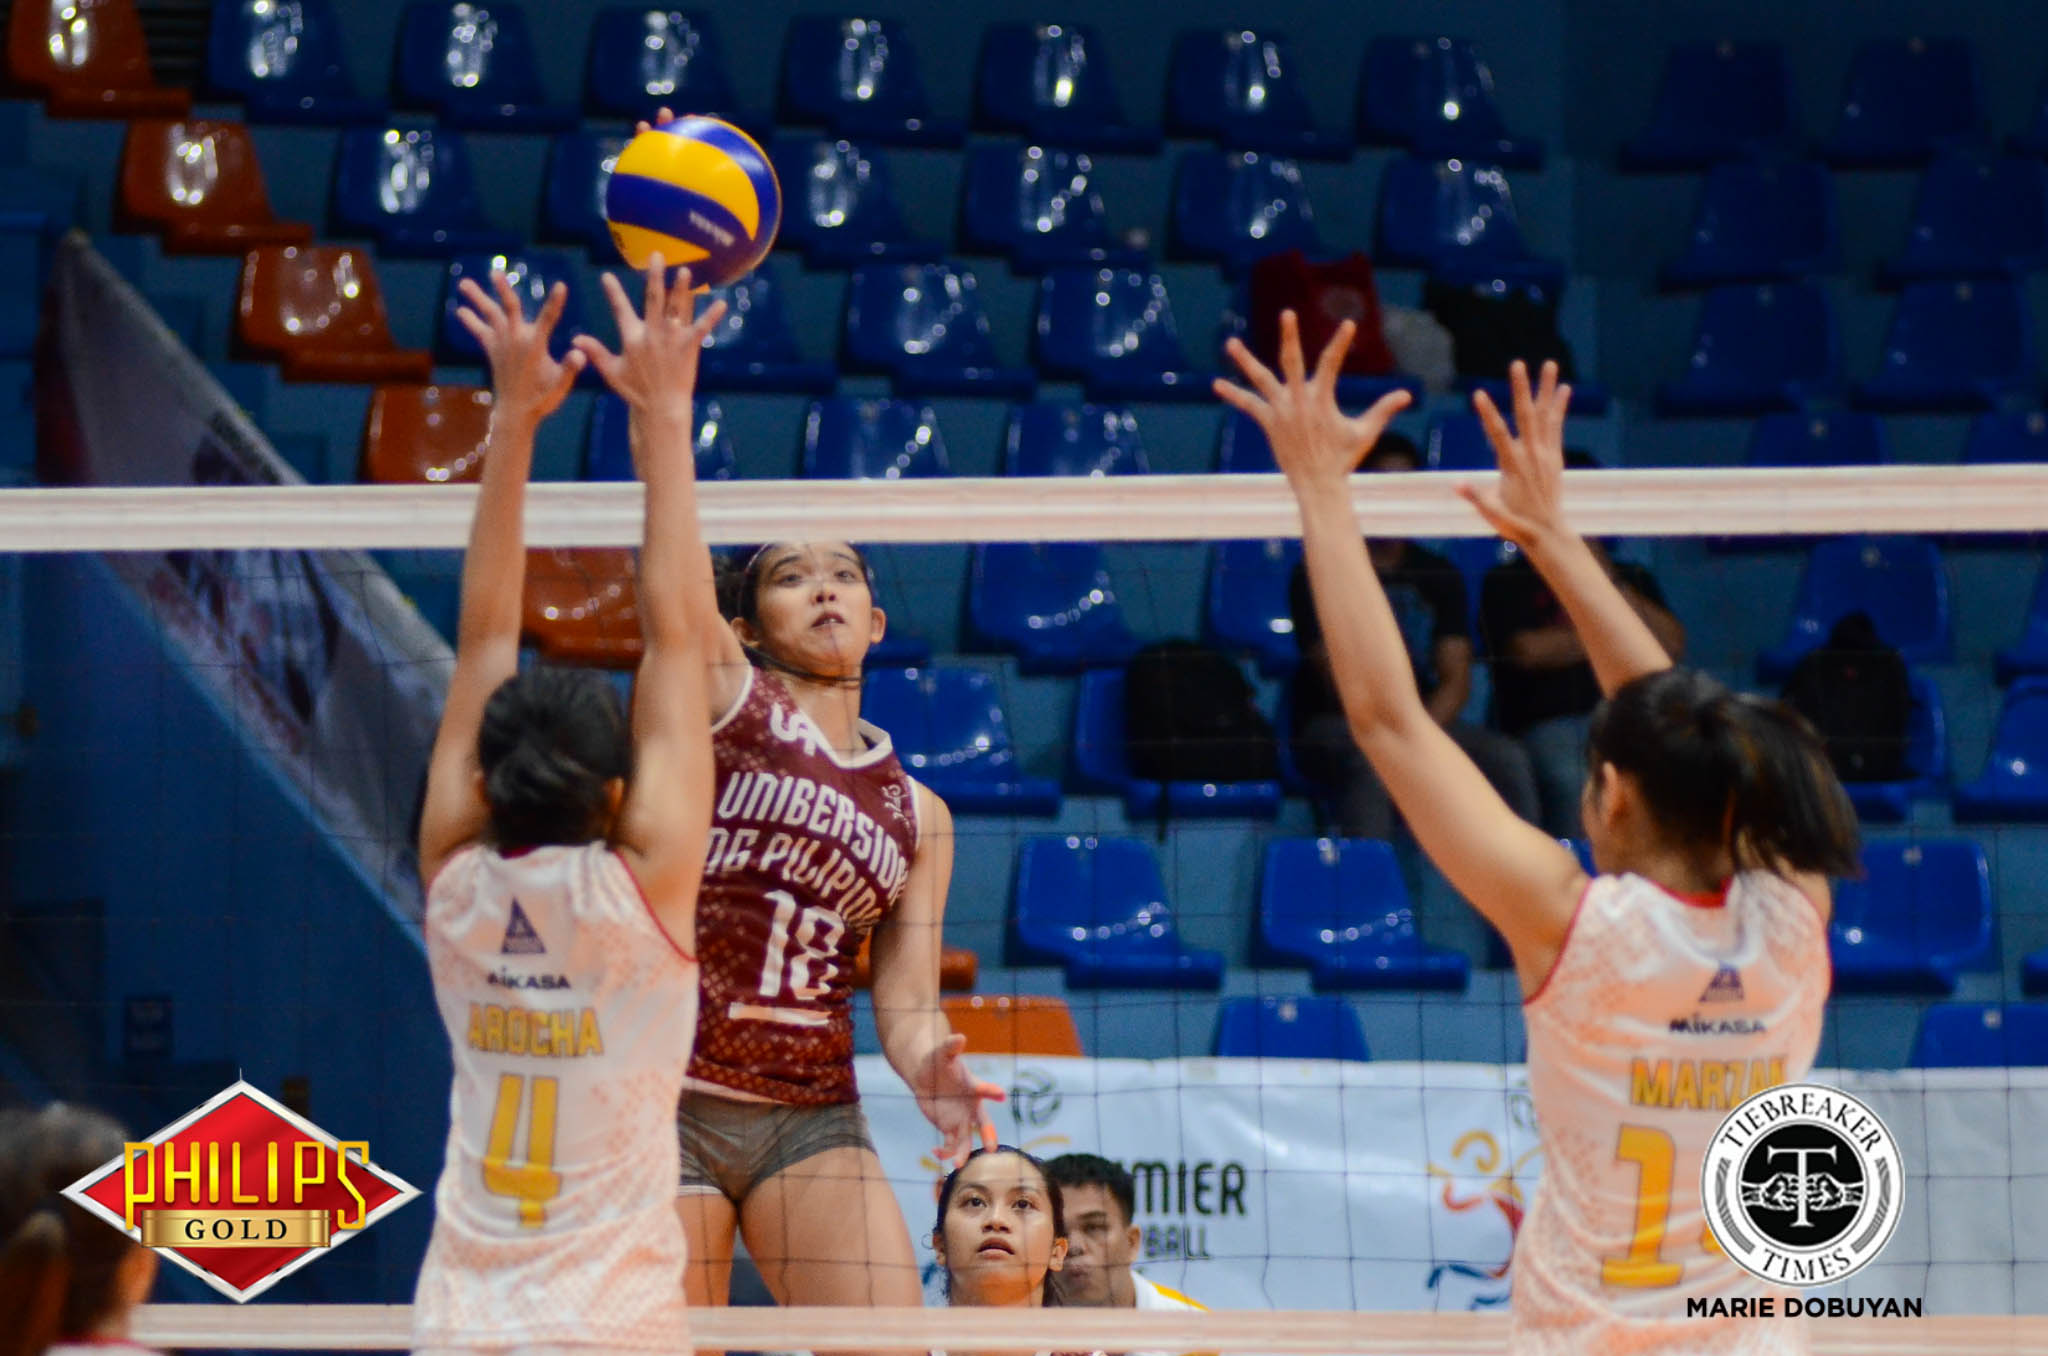 Tiebreaker Times UP ends Open campaign with gritty win over Power Smashers News PVL UP Volleyball  UP Women's Volleyball Tots Carlos Rose Cailing Remelyn Altomea Regine Arocha Power Smashers Nes Pamilar Jovelyn Prado Jerry Yee Isa Molde 2017 PVL Women's Open Conference 2017 PVL Season